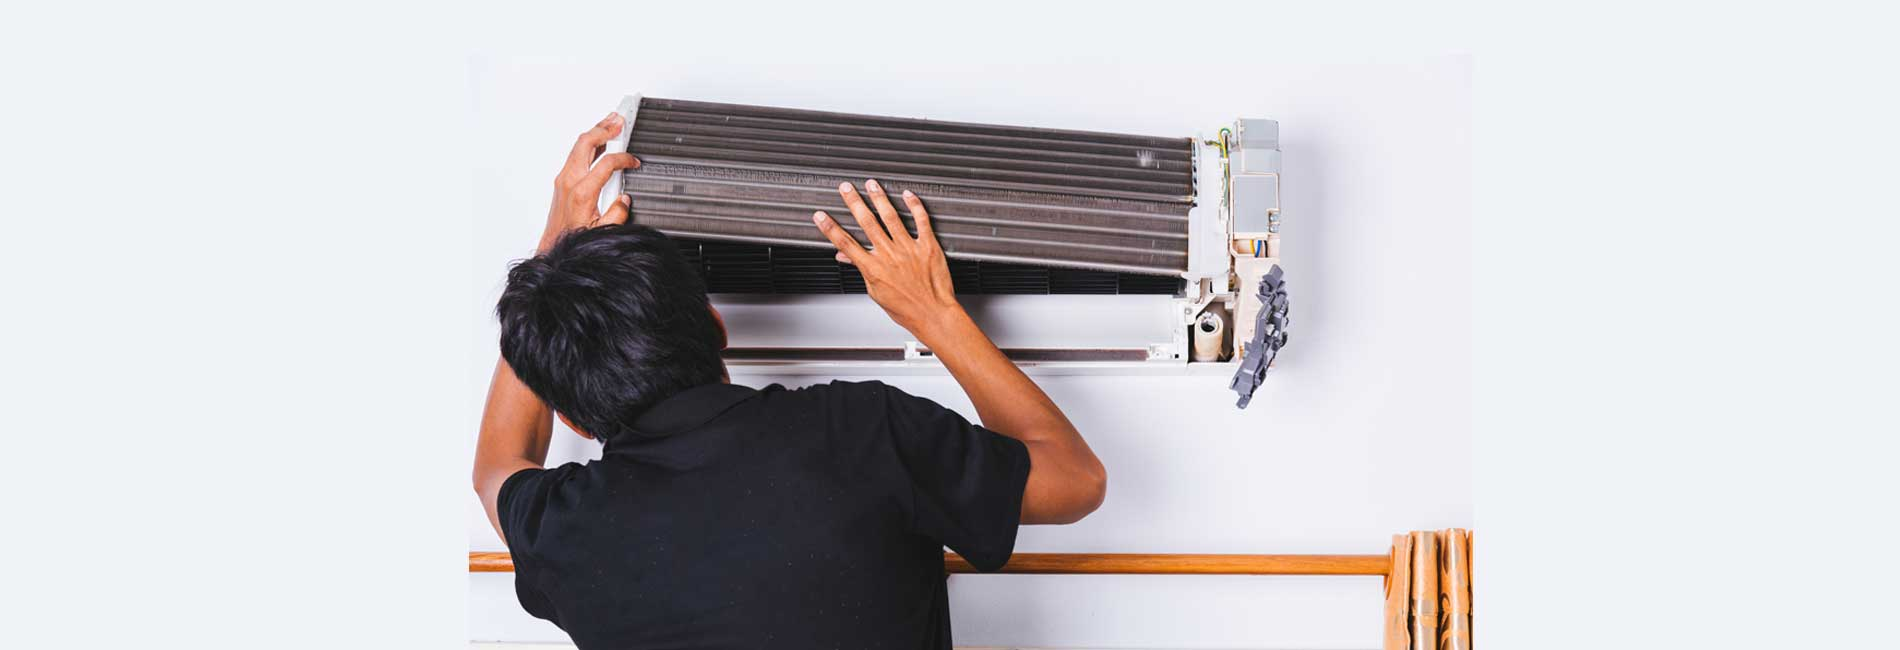 Air Condition Service in Triplicane